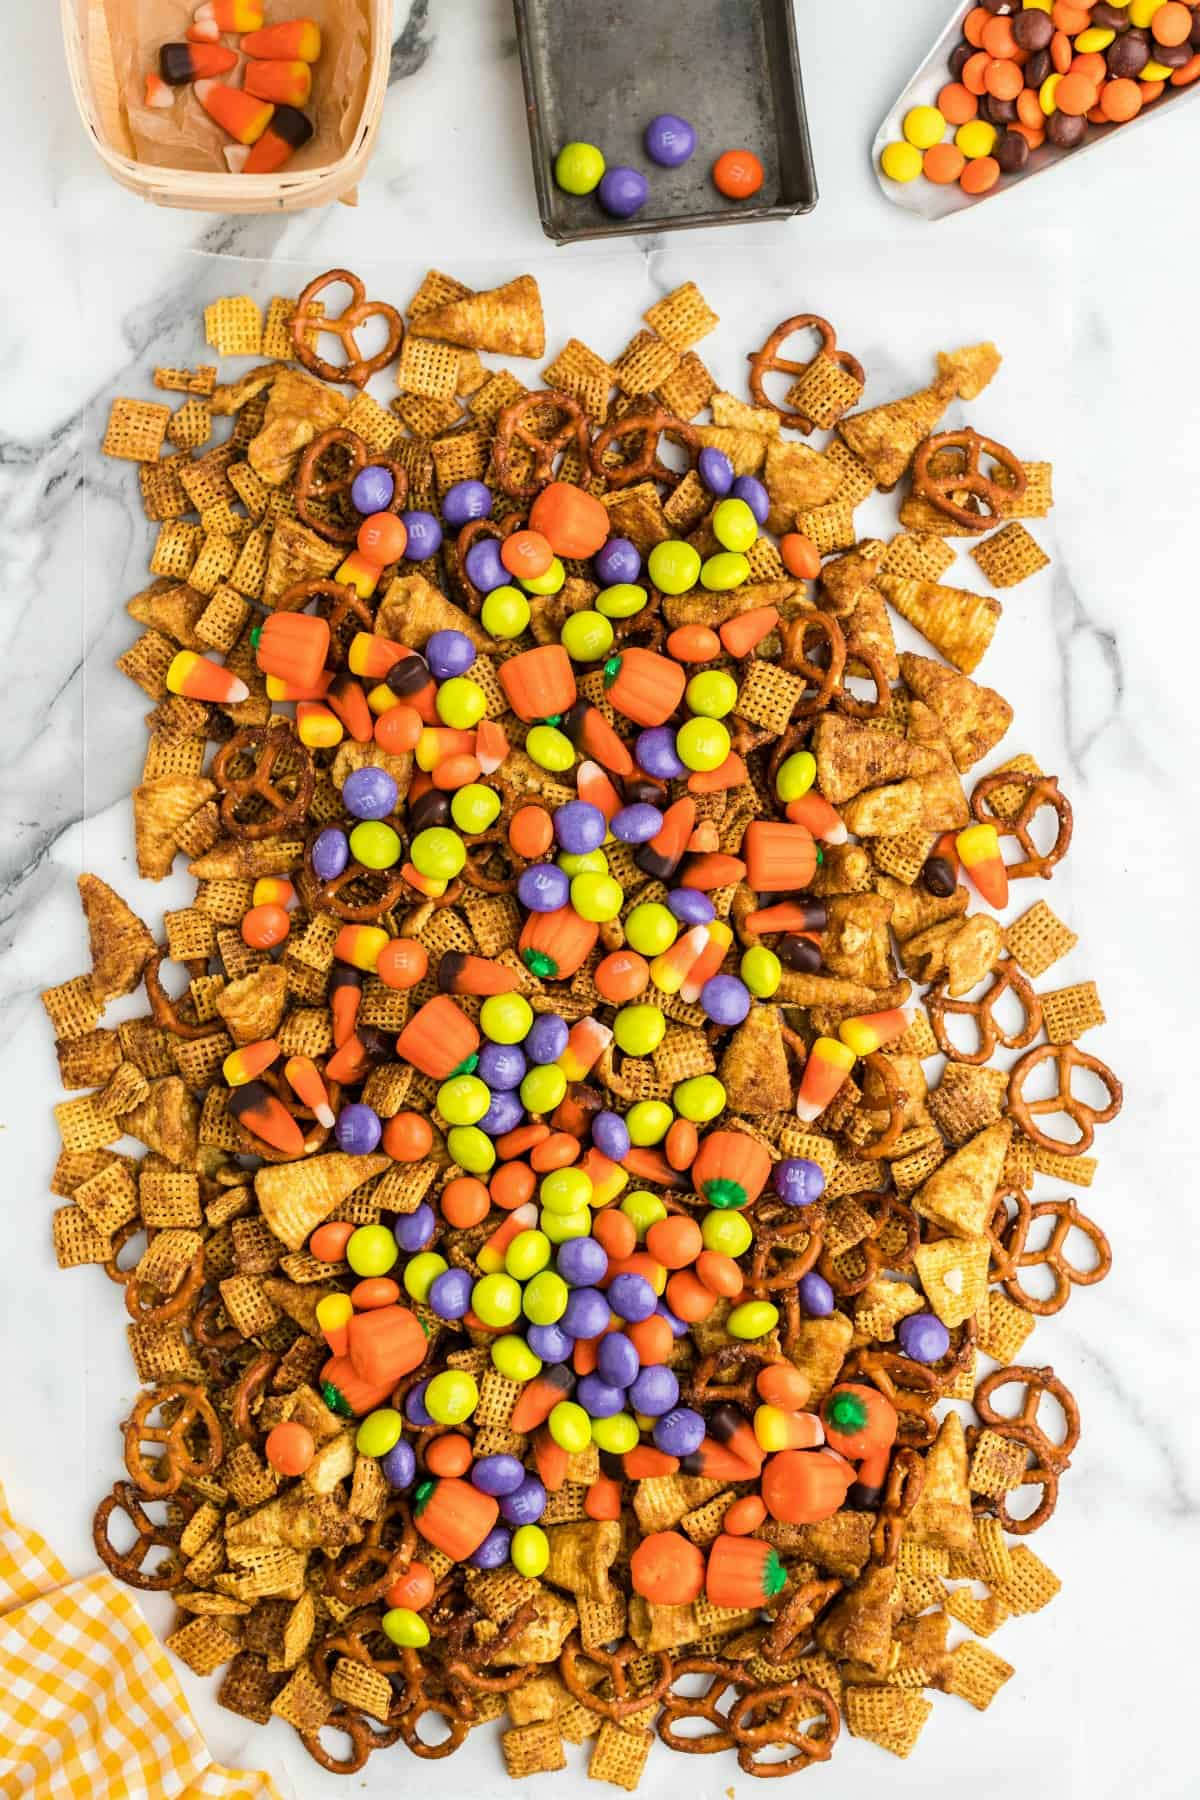 Halloween candy on top of chex mix